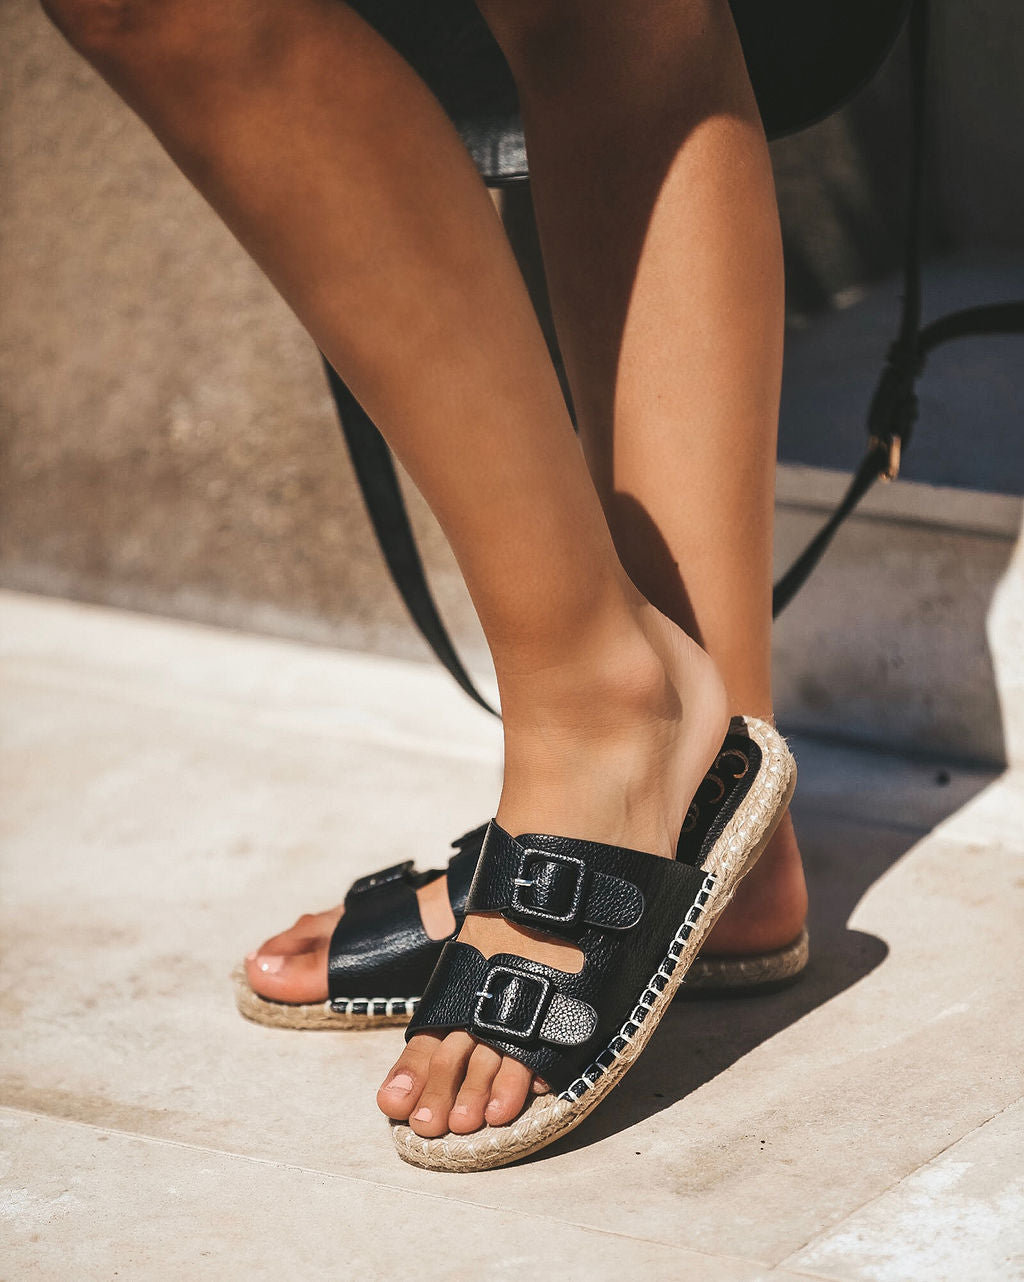 163b87fdfe4b Detail Product. ← Home - SHOES - Free To Roam Espadrille Buckle Sandal -  FINAL SALE